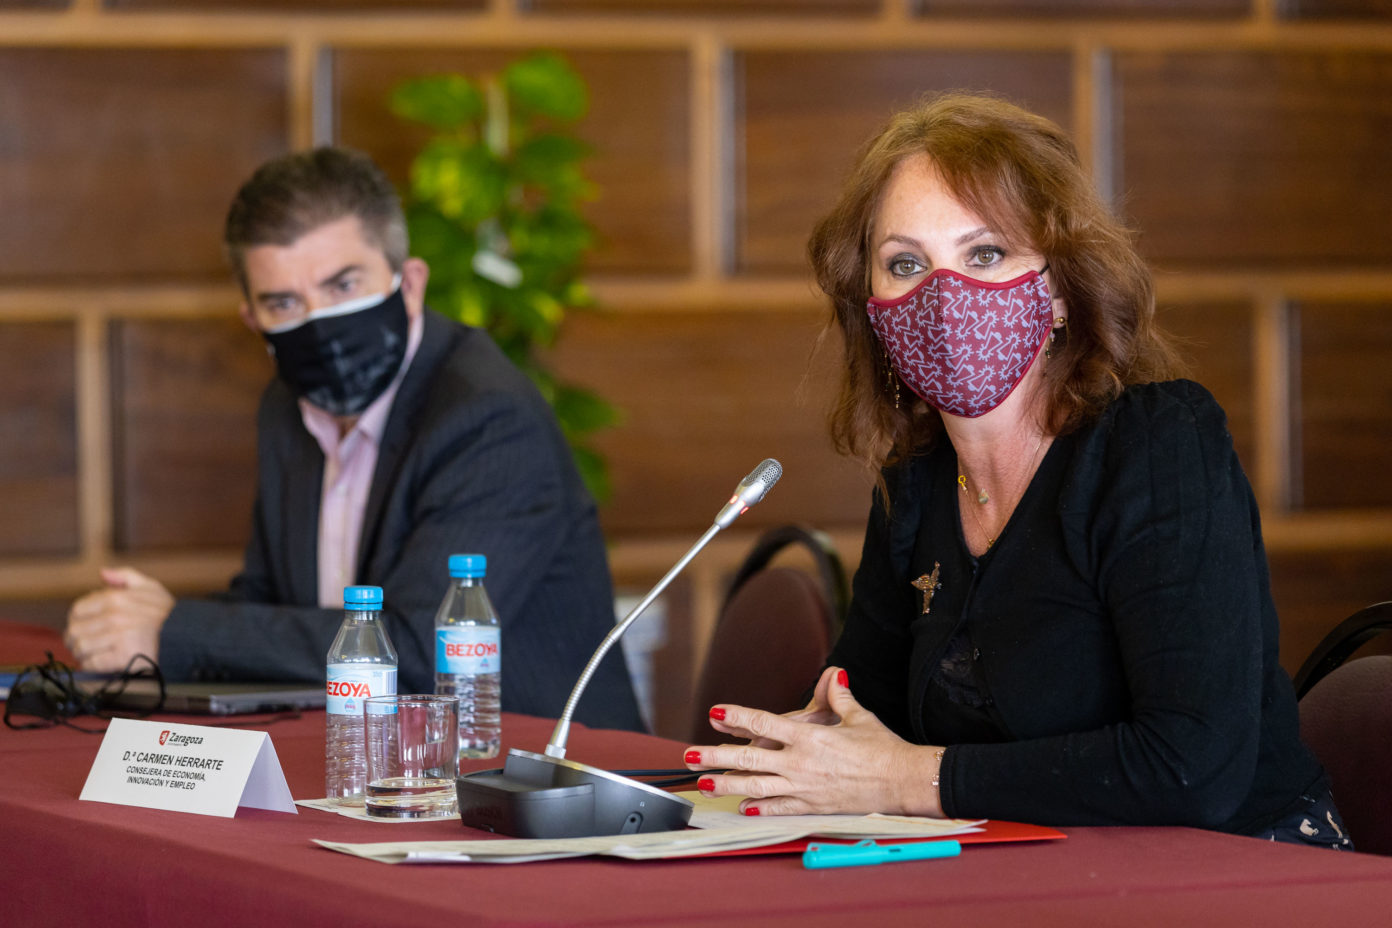 Carmen Herrarte at the Zaragoza City Hall during a working day with scientists and hoteliers on air quality. (Zaragoza City Council)